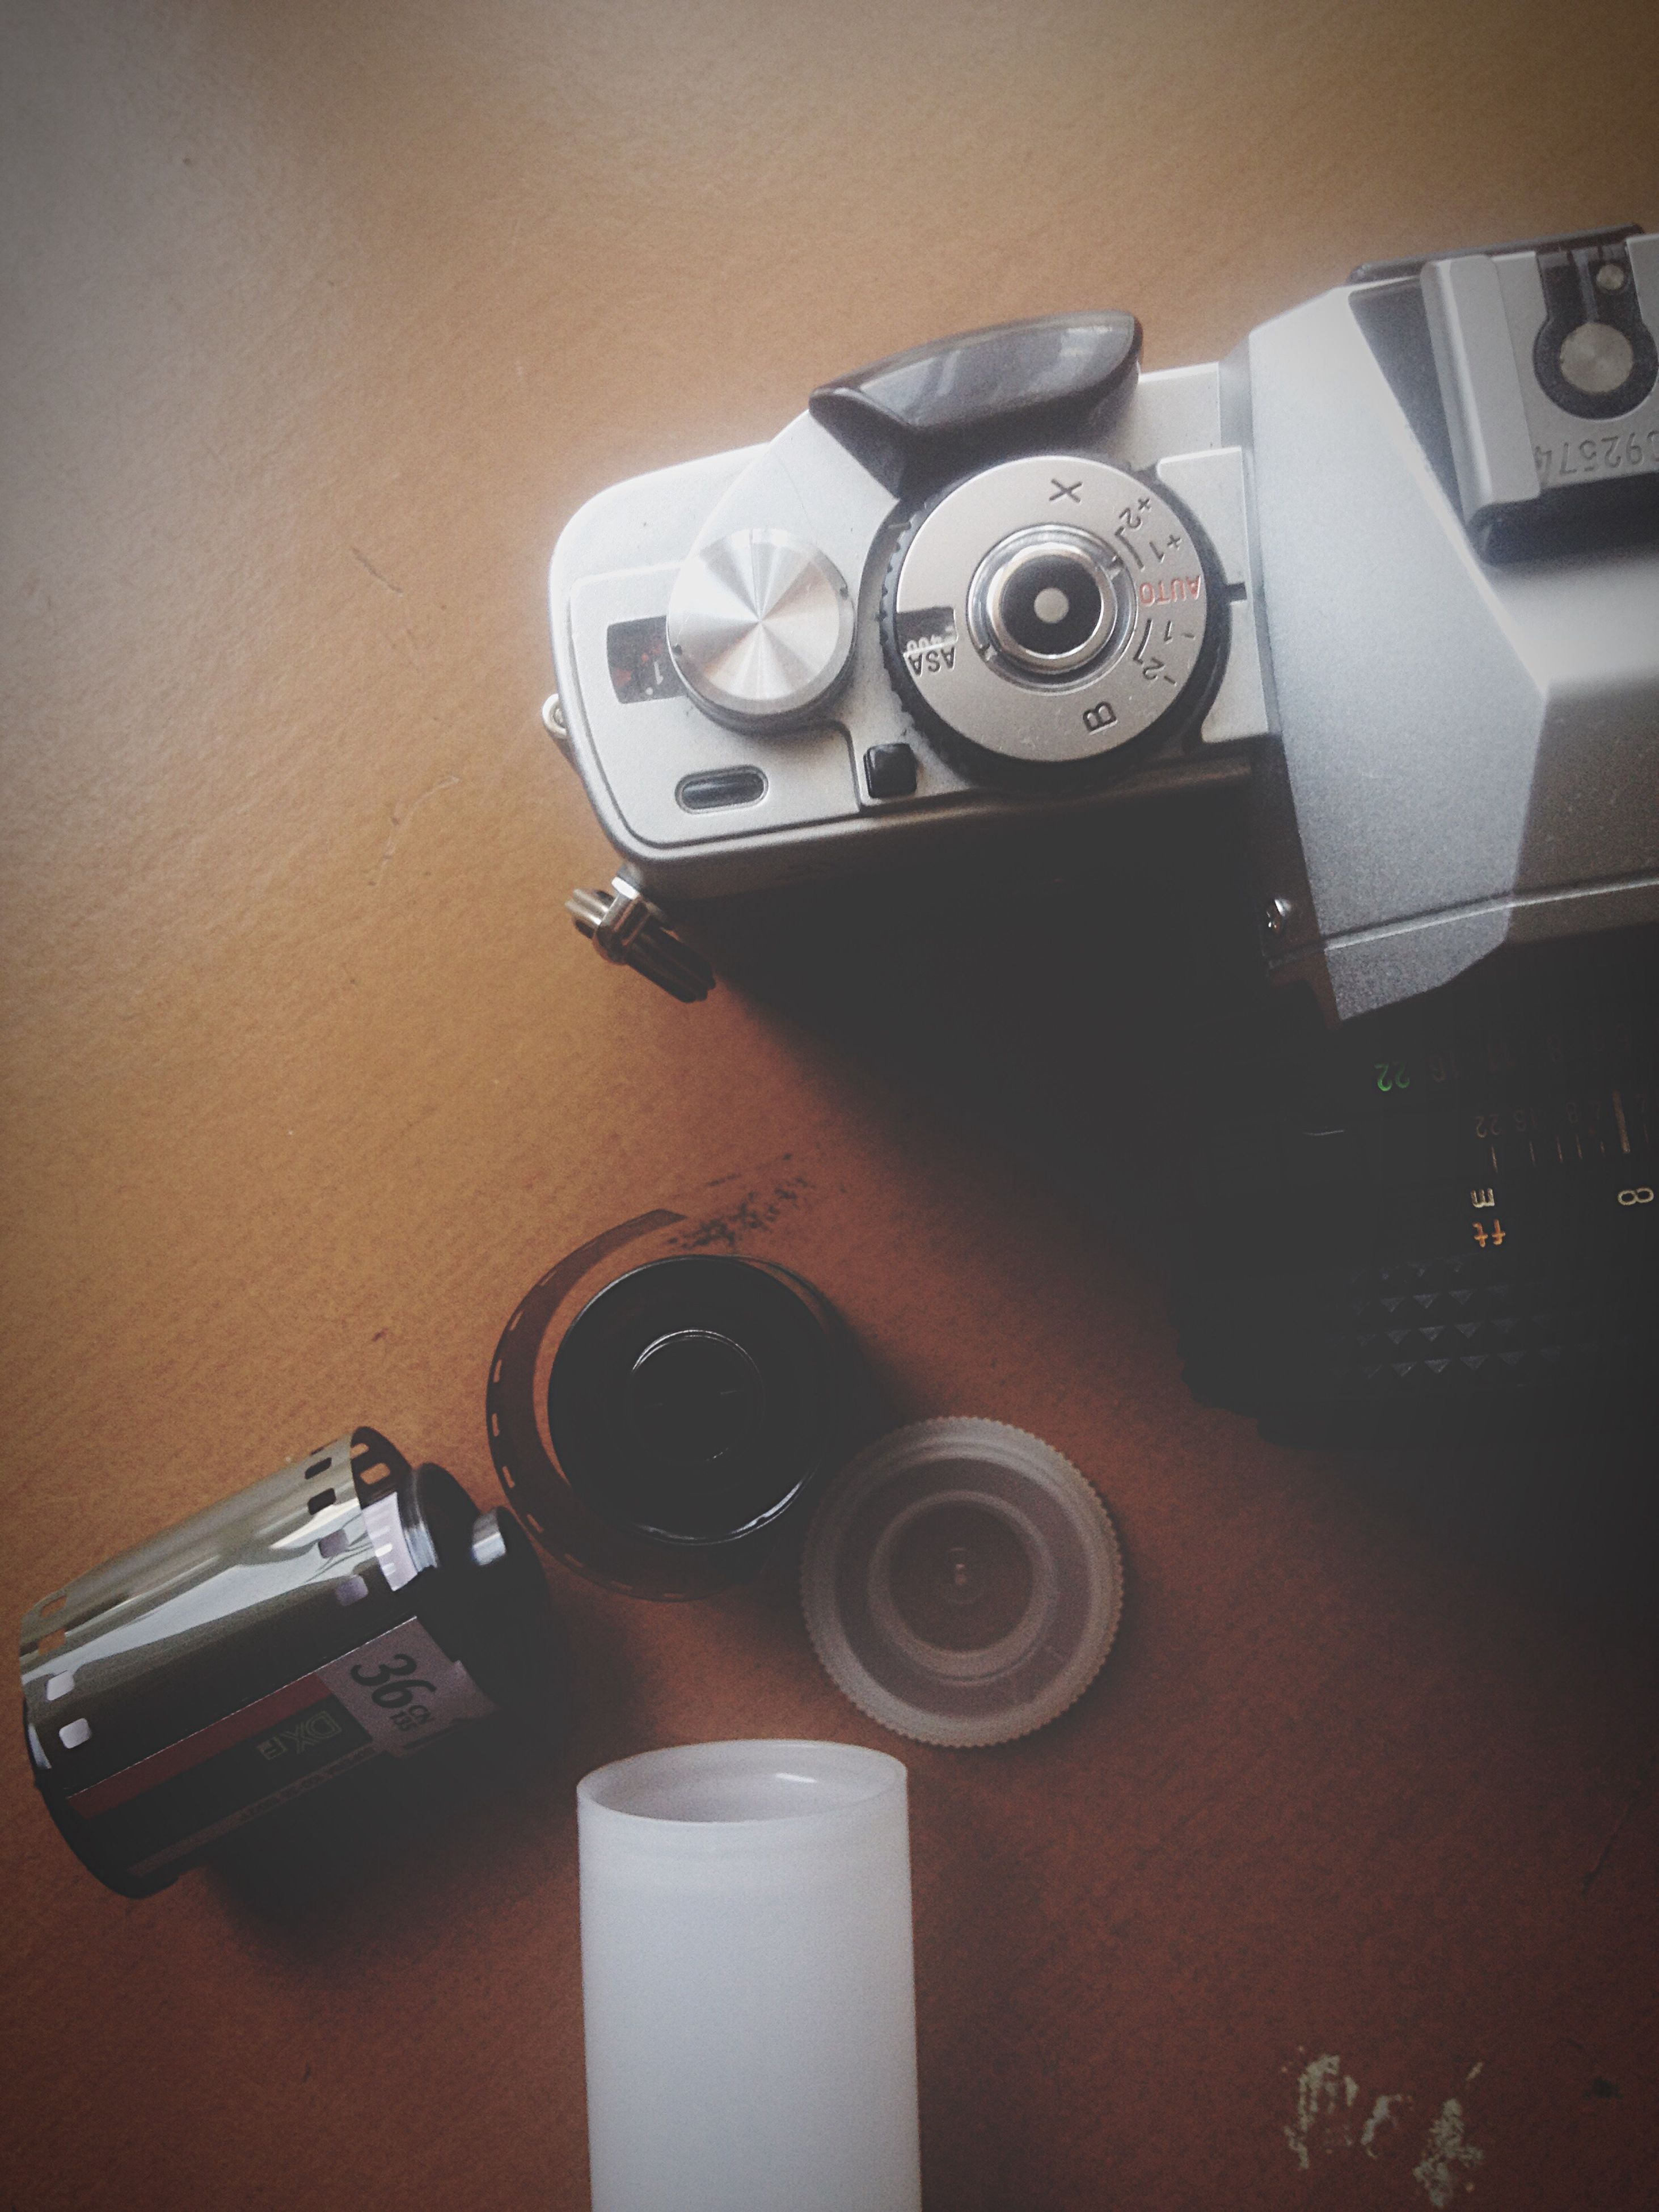 technology, indoors, camera - photographic equipment, cable, modern, man made object, memories